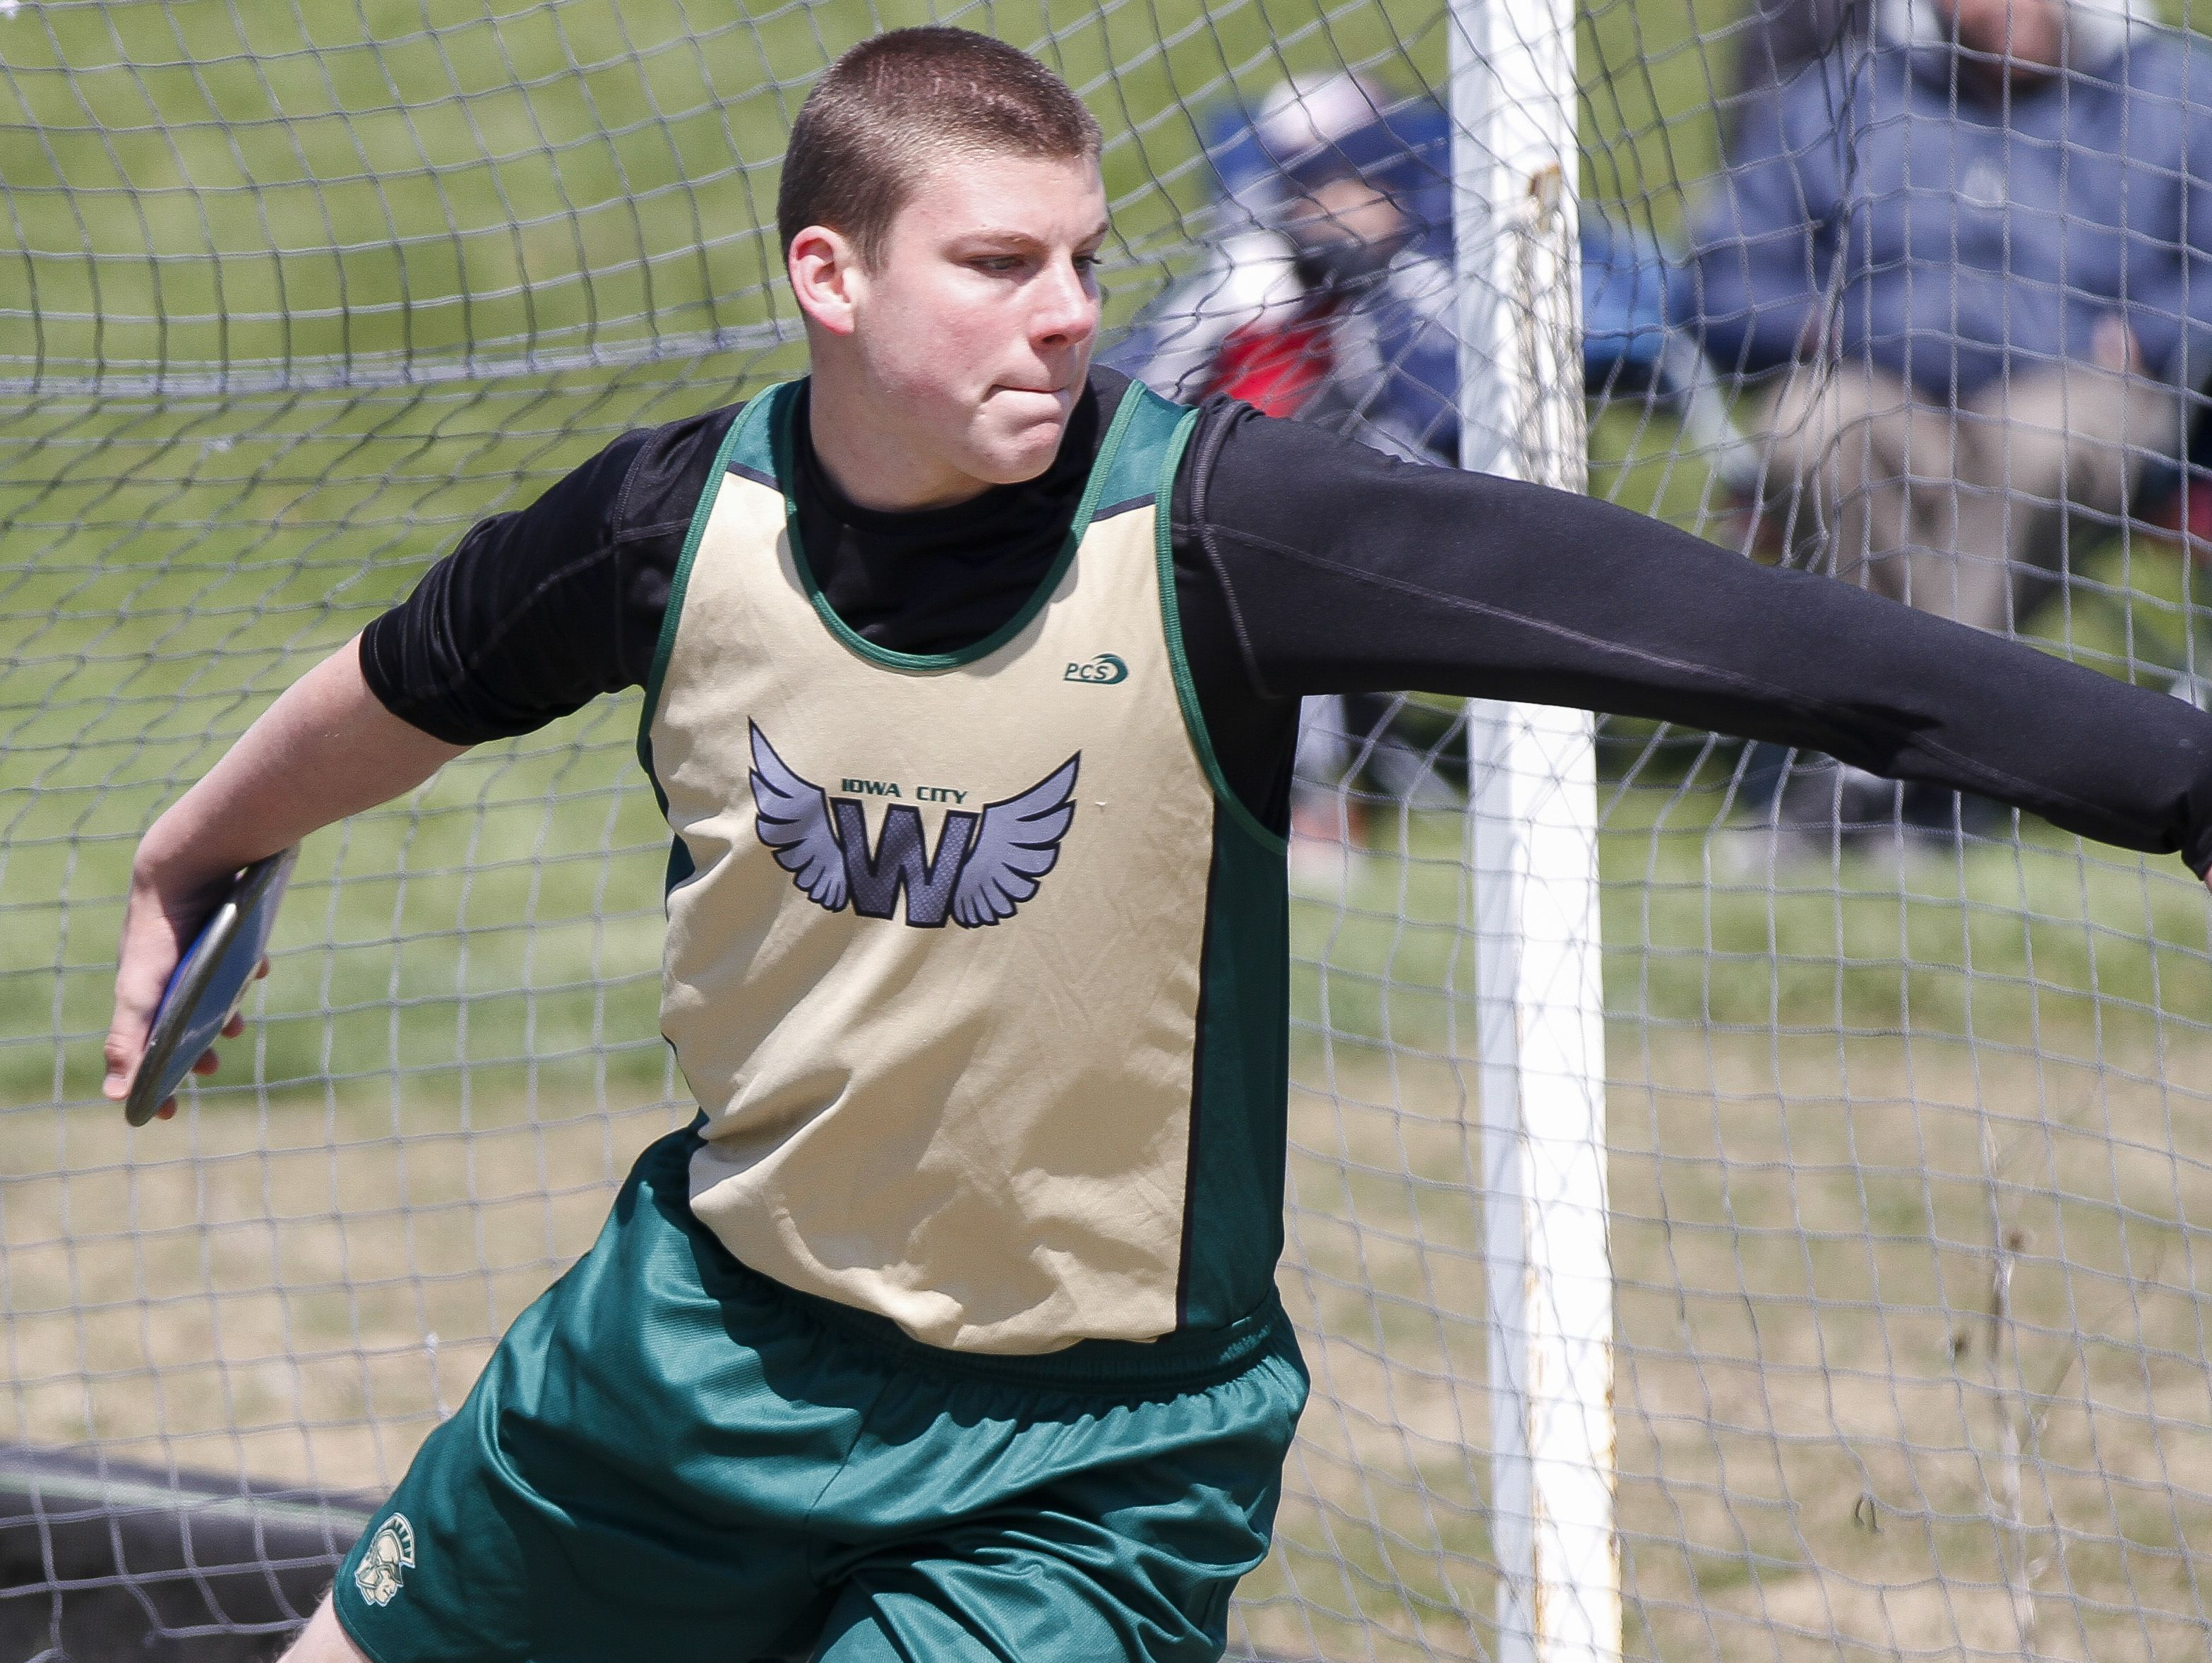 Iowa City West's Jonathan Gannon competes in the discus throw during the Hollingsworth Relays at Iowa City West on Saturday, April 9, 2016. (Tork Mason/Freelance)